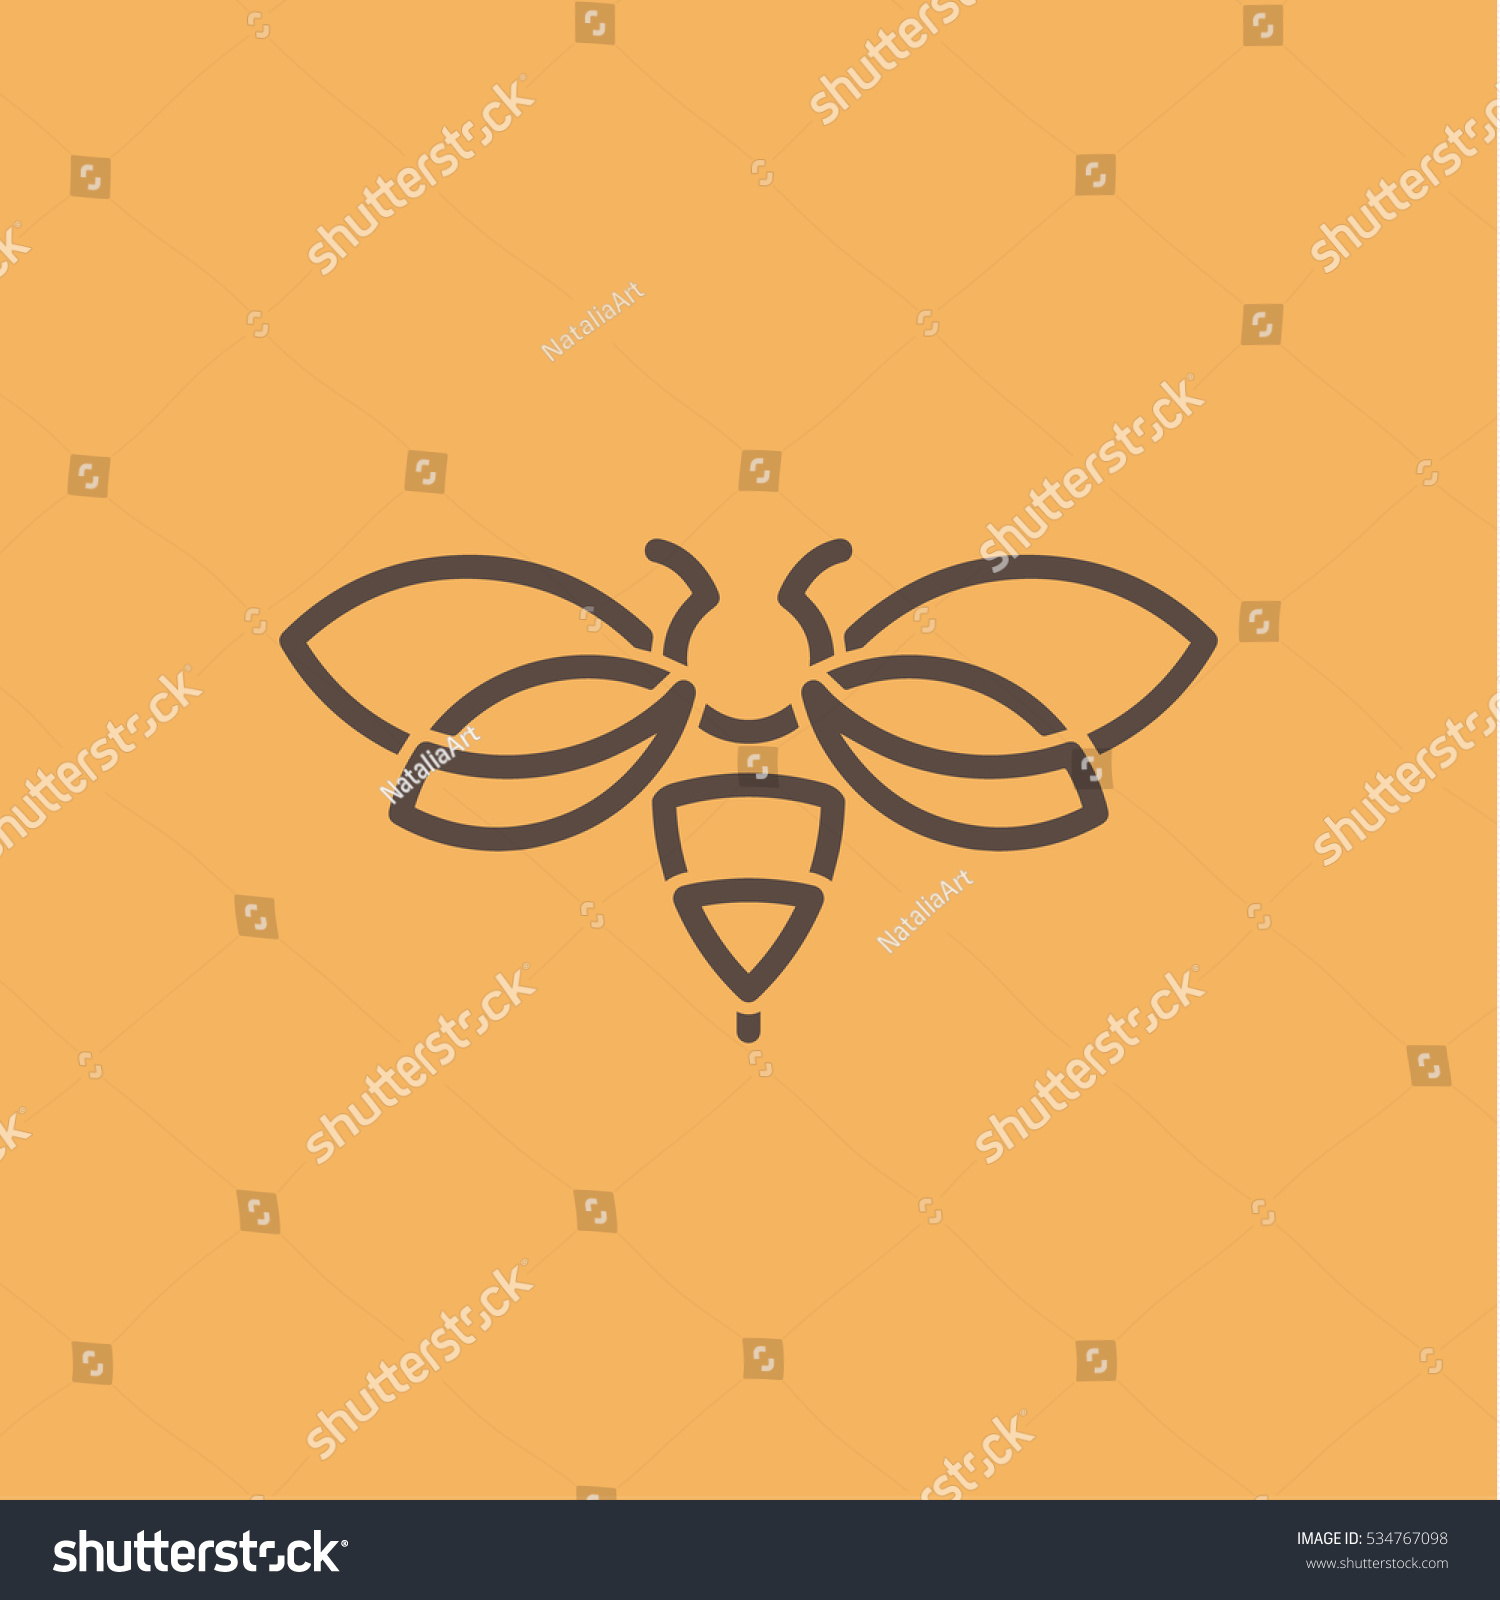 Insect wasp illustration logos style modern stock vector for Minimal art vector